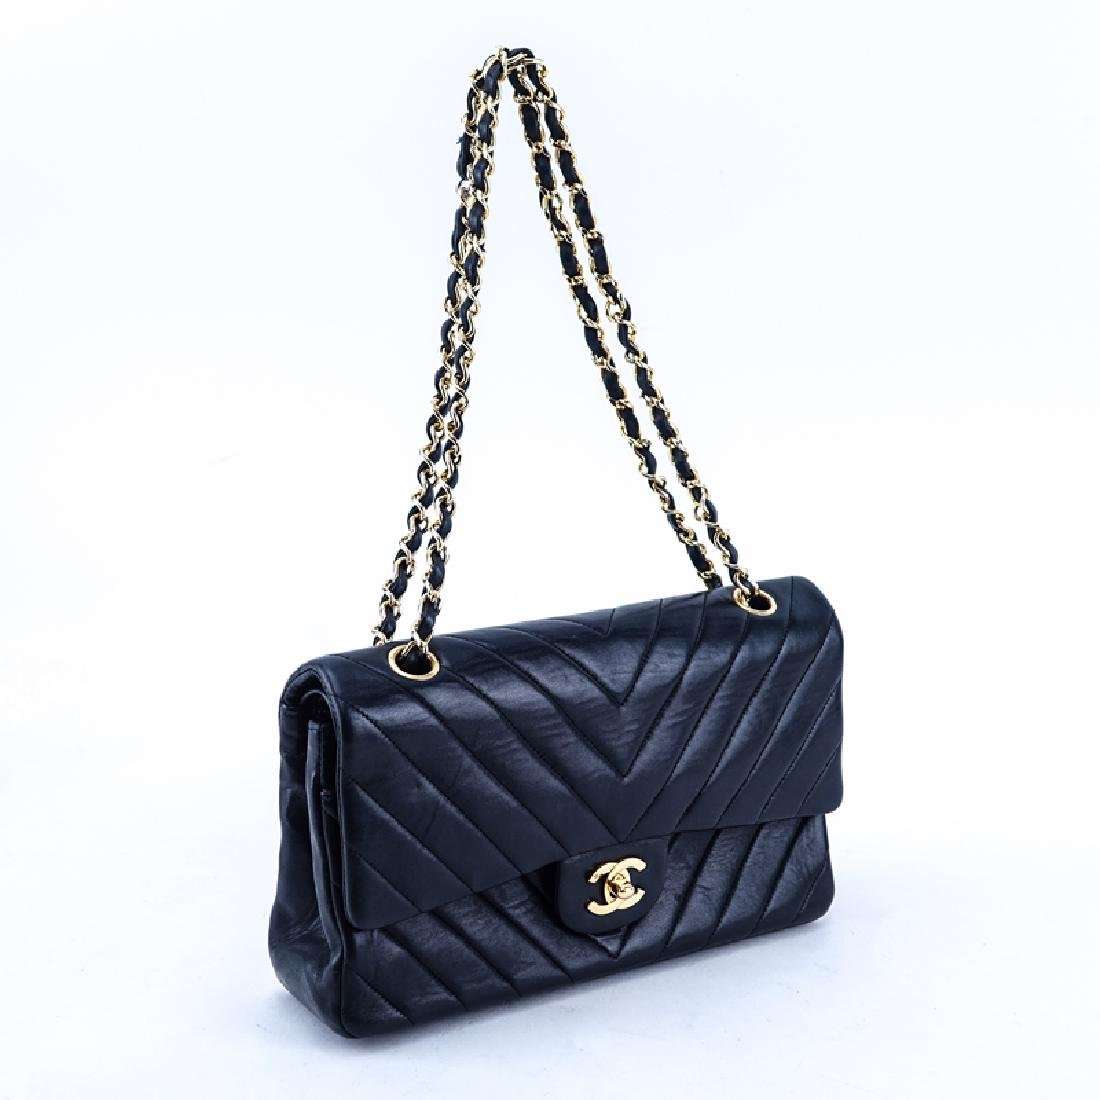 Chanel Black Quilted Chevron Motif Leather Double Flap